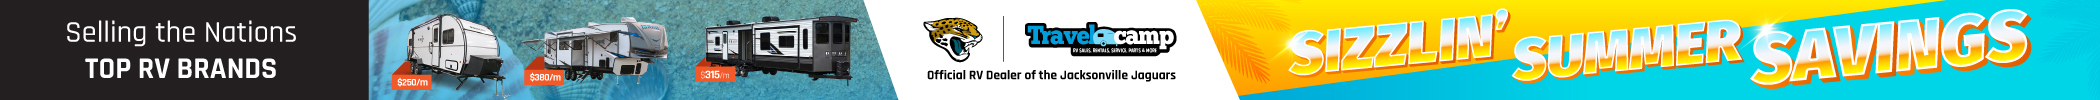 Press Releases | Travelcamp | RV Sales Rentals Service | Florida